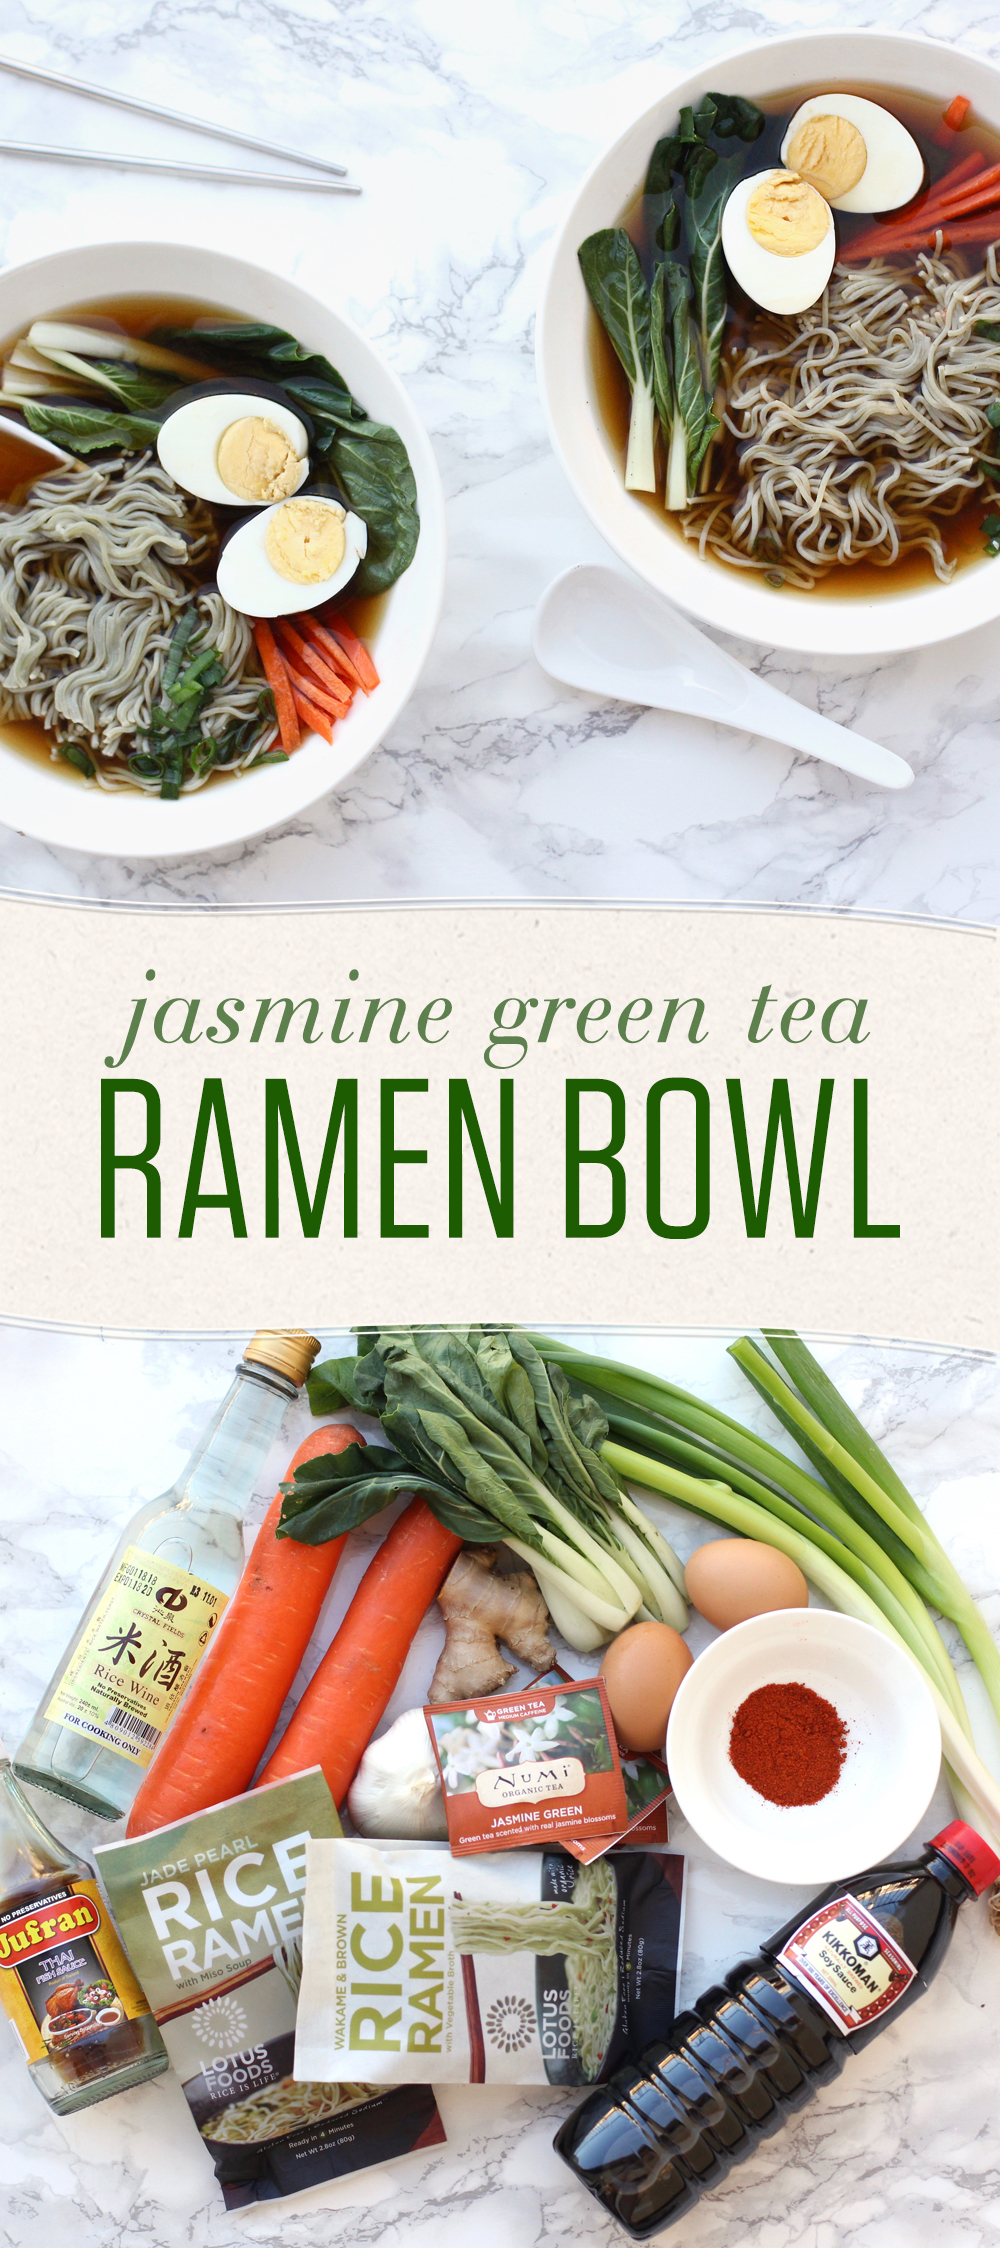 Tea is great for adding nuanced flavor to broths, baked goods, and more. This ramen recipe is easy to adapt using whatever veggies you have on hand!